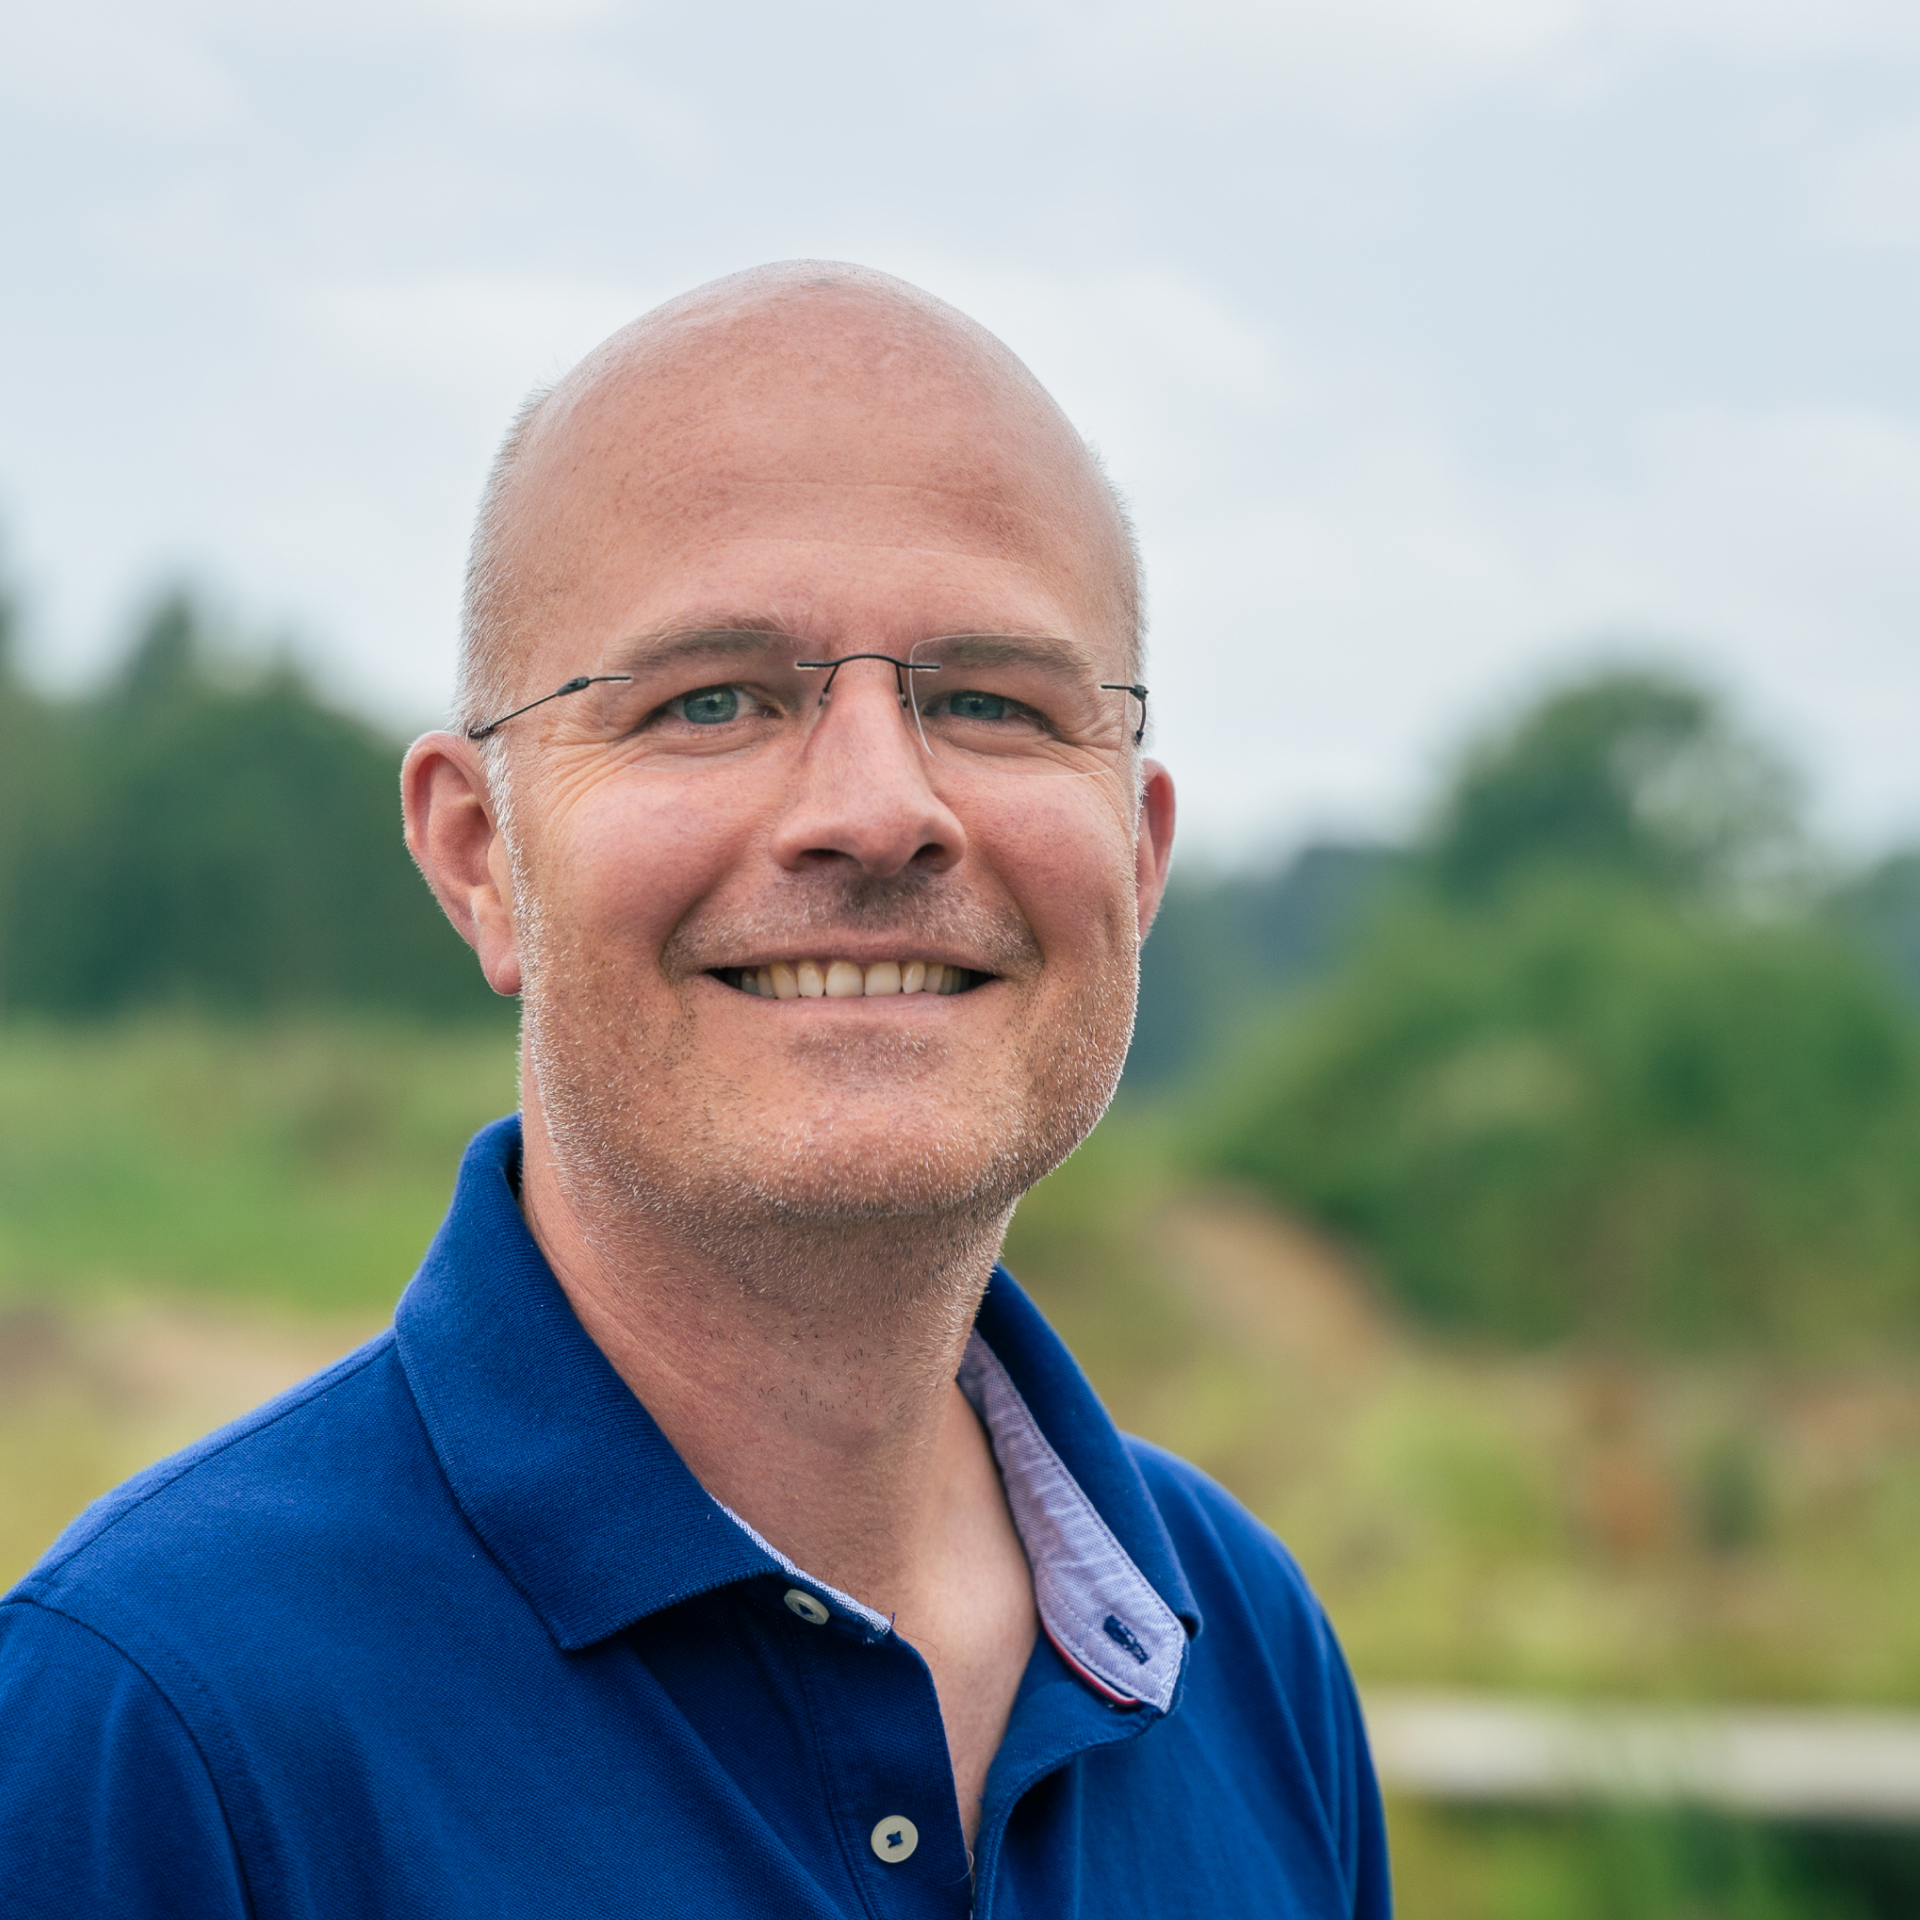 Lightyear welcomes Wouter Vink as new VP Marketing